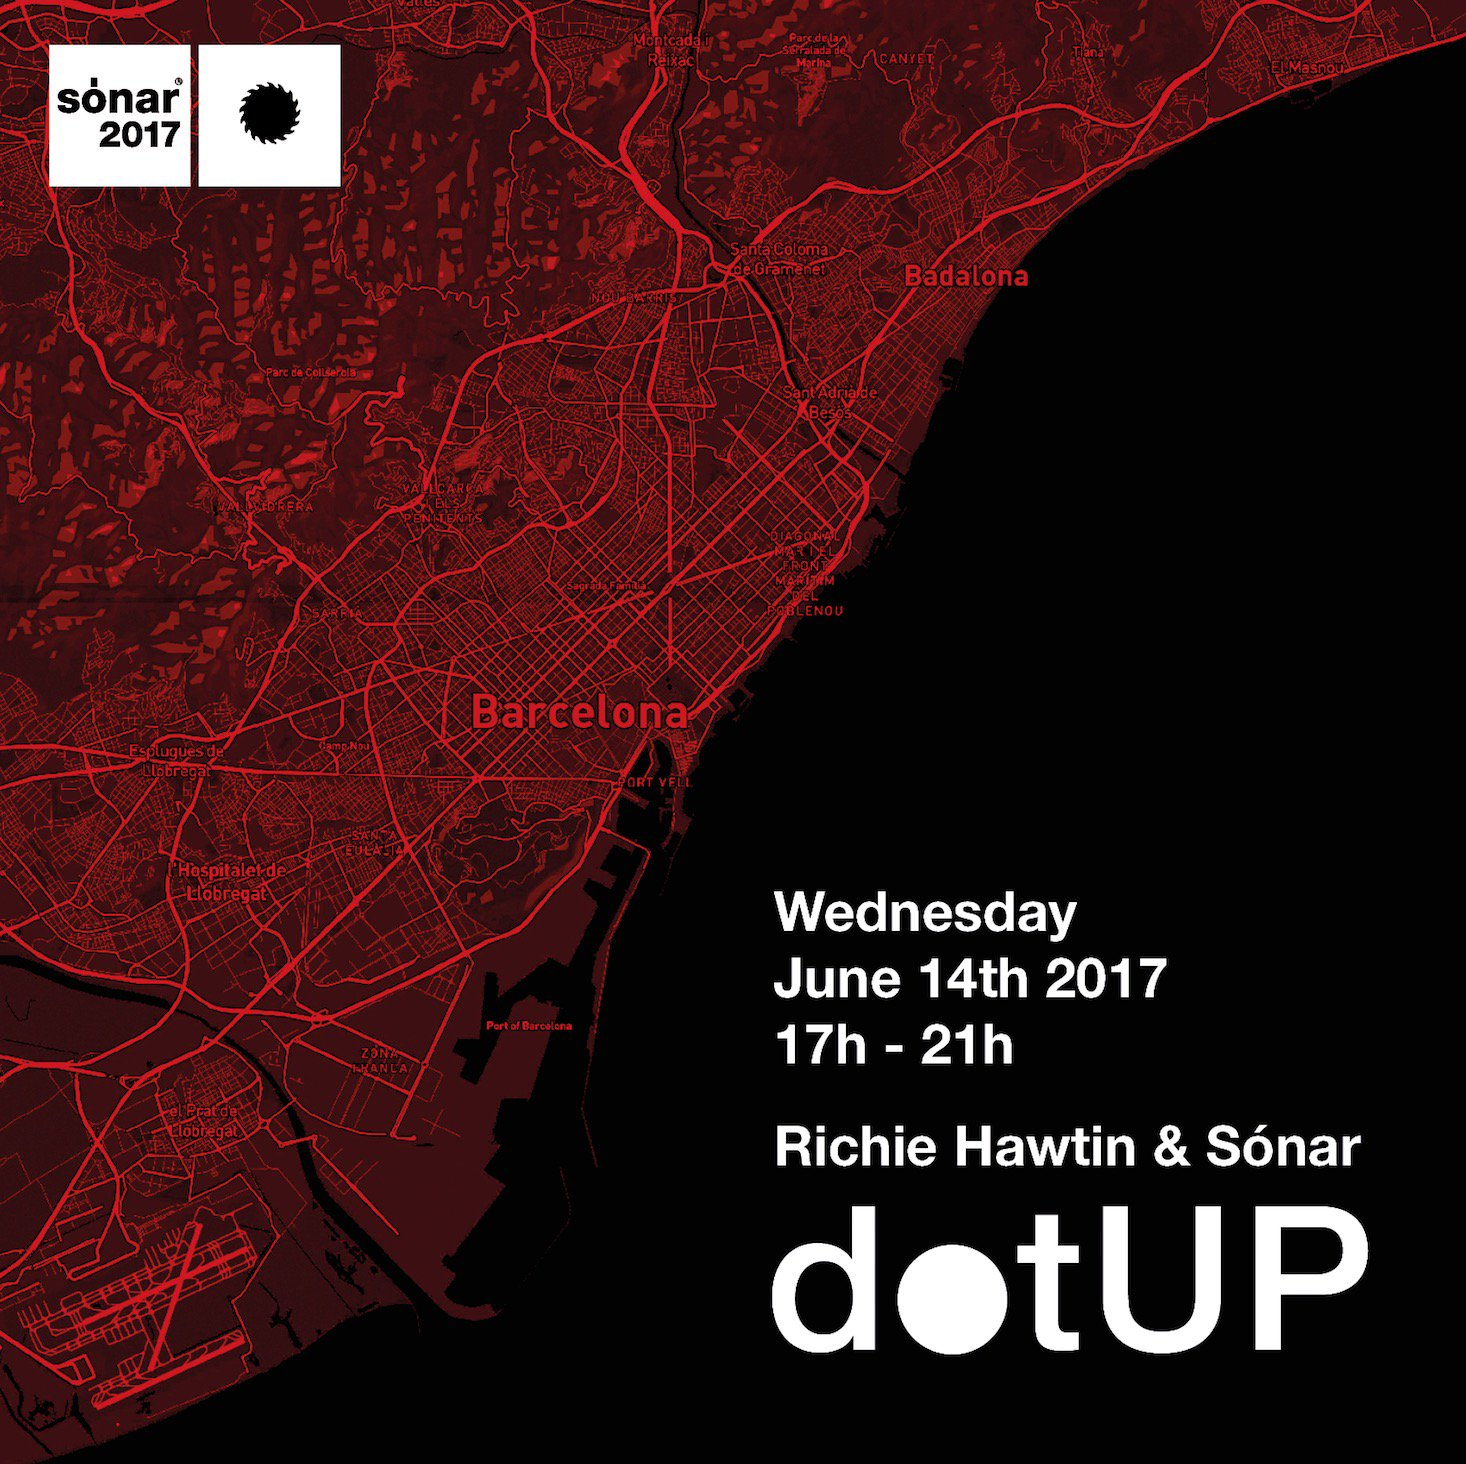 Thumbnail for dotUP BCN 2017